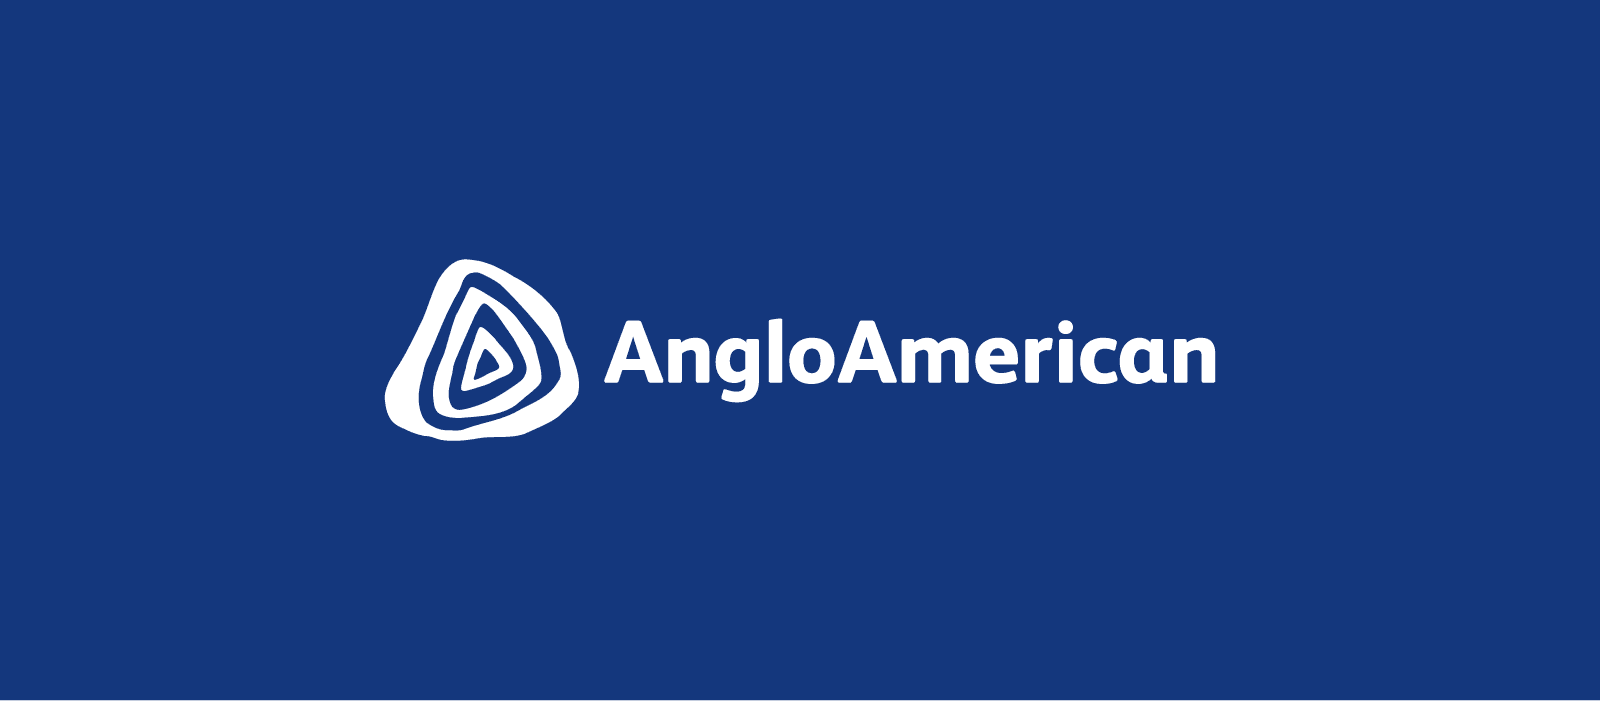 Anglo draws interest from would-be copper partners in Peru